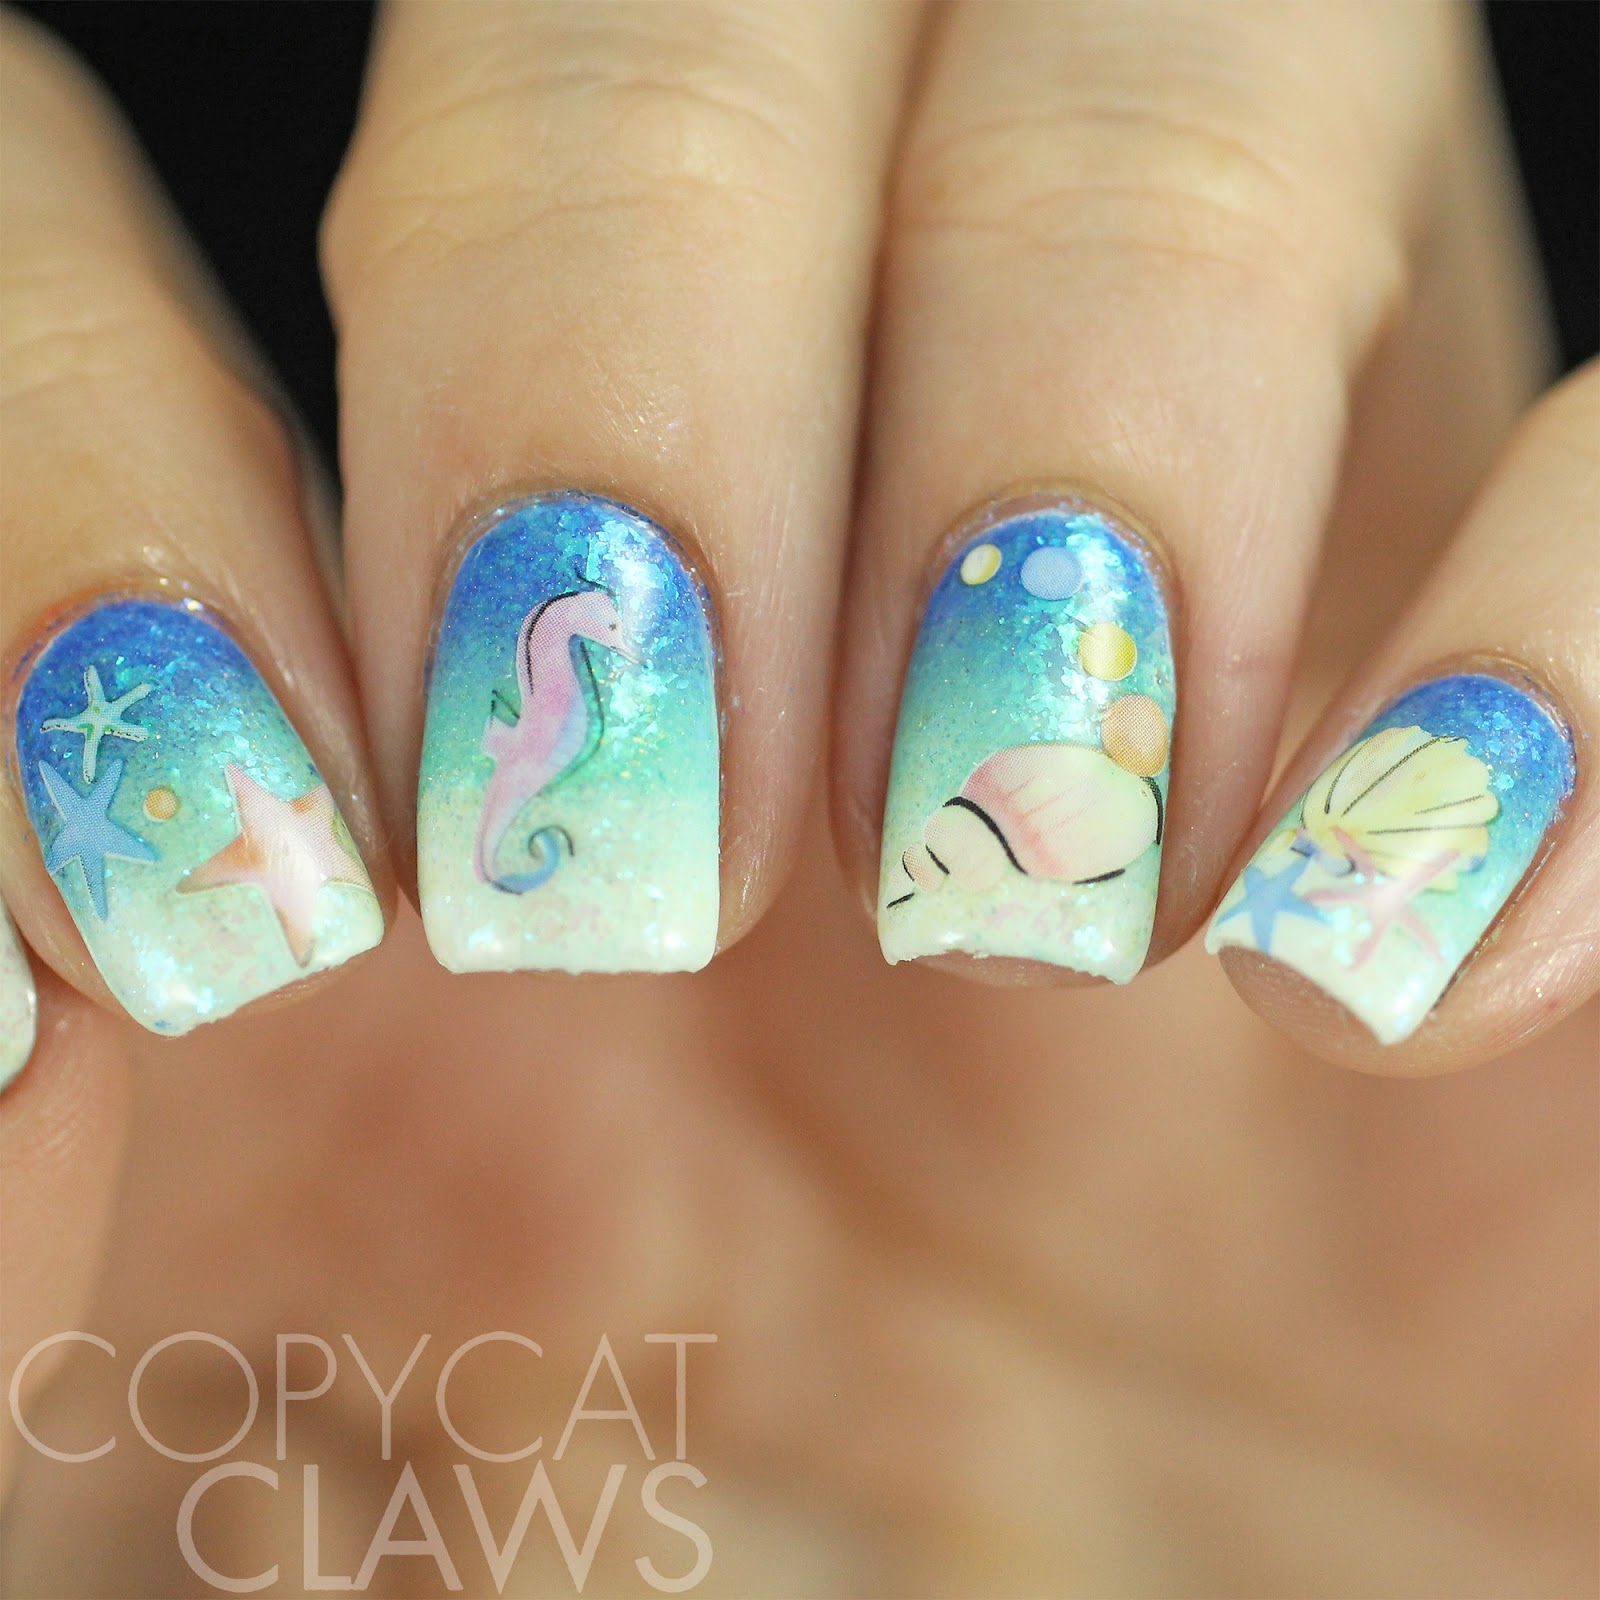 Copycat claws 40 great nail art ideas things in the water below are the photos of the 4 sheets of water decals that came in the gift set most of the sheets are fishshellbeach themed but there is a sheet prinsesfo Image collections